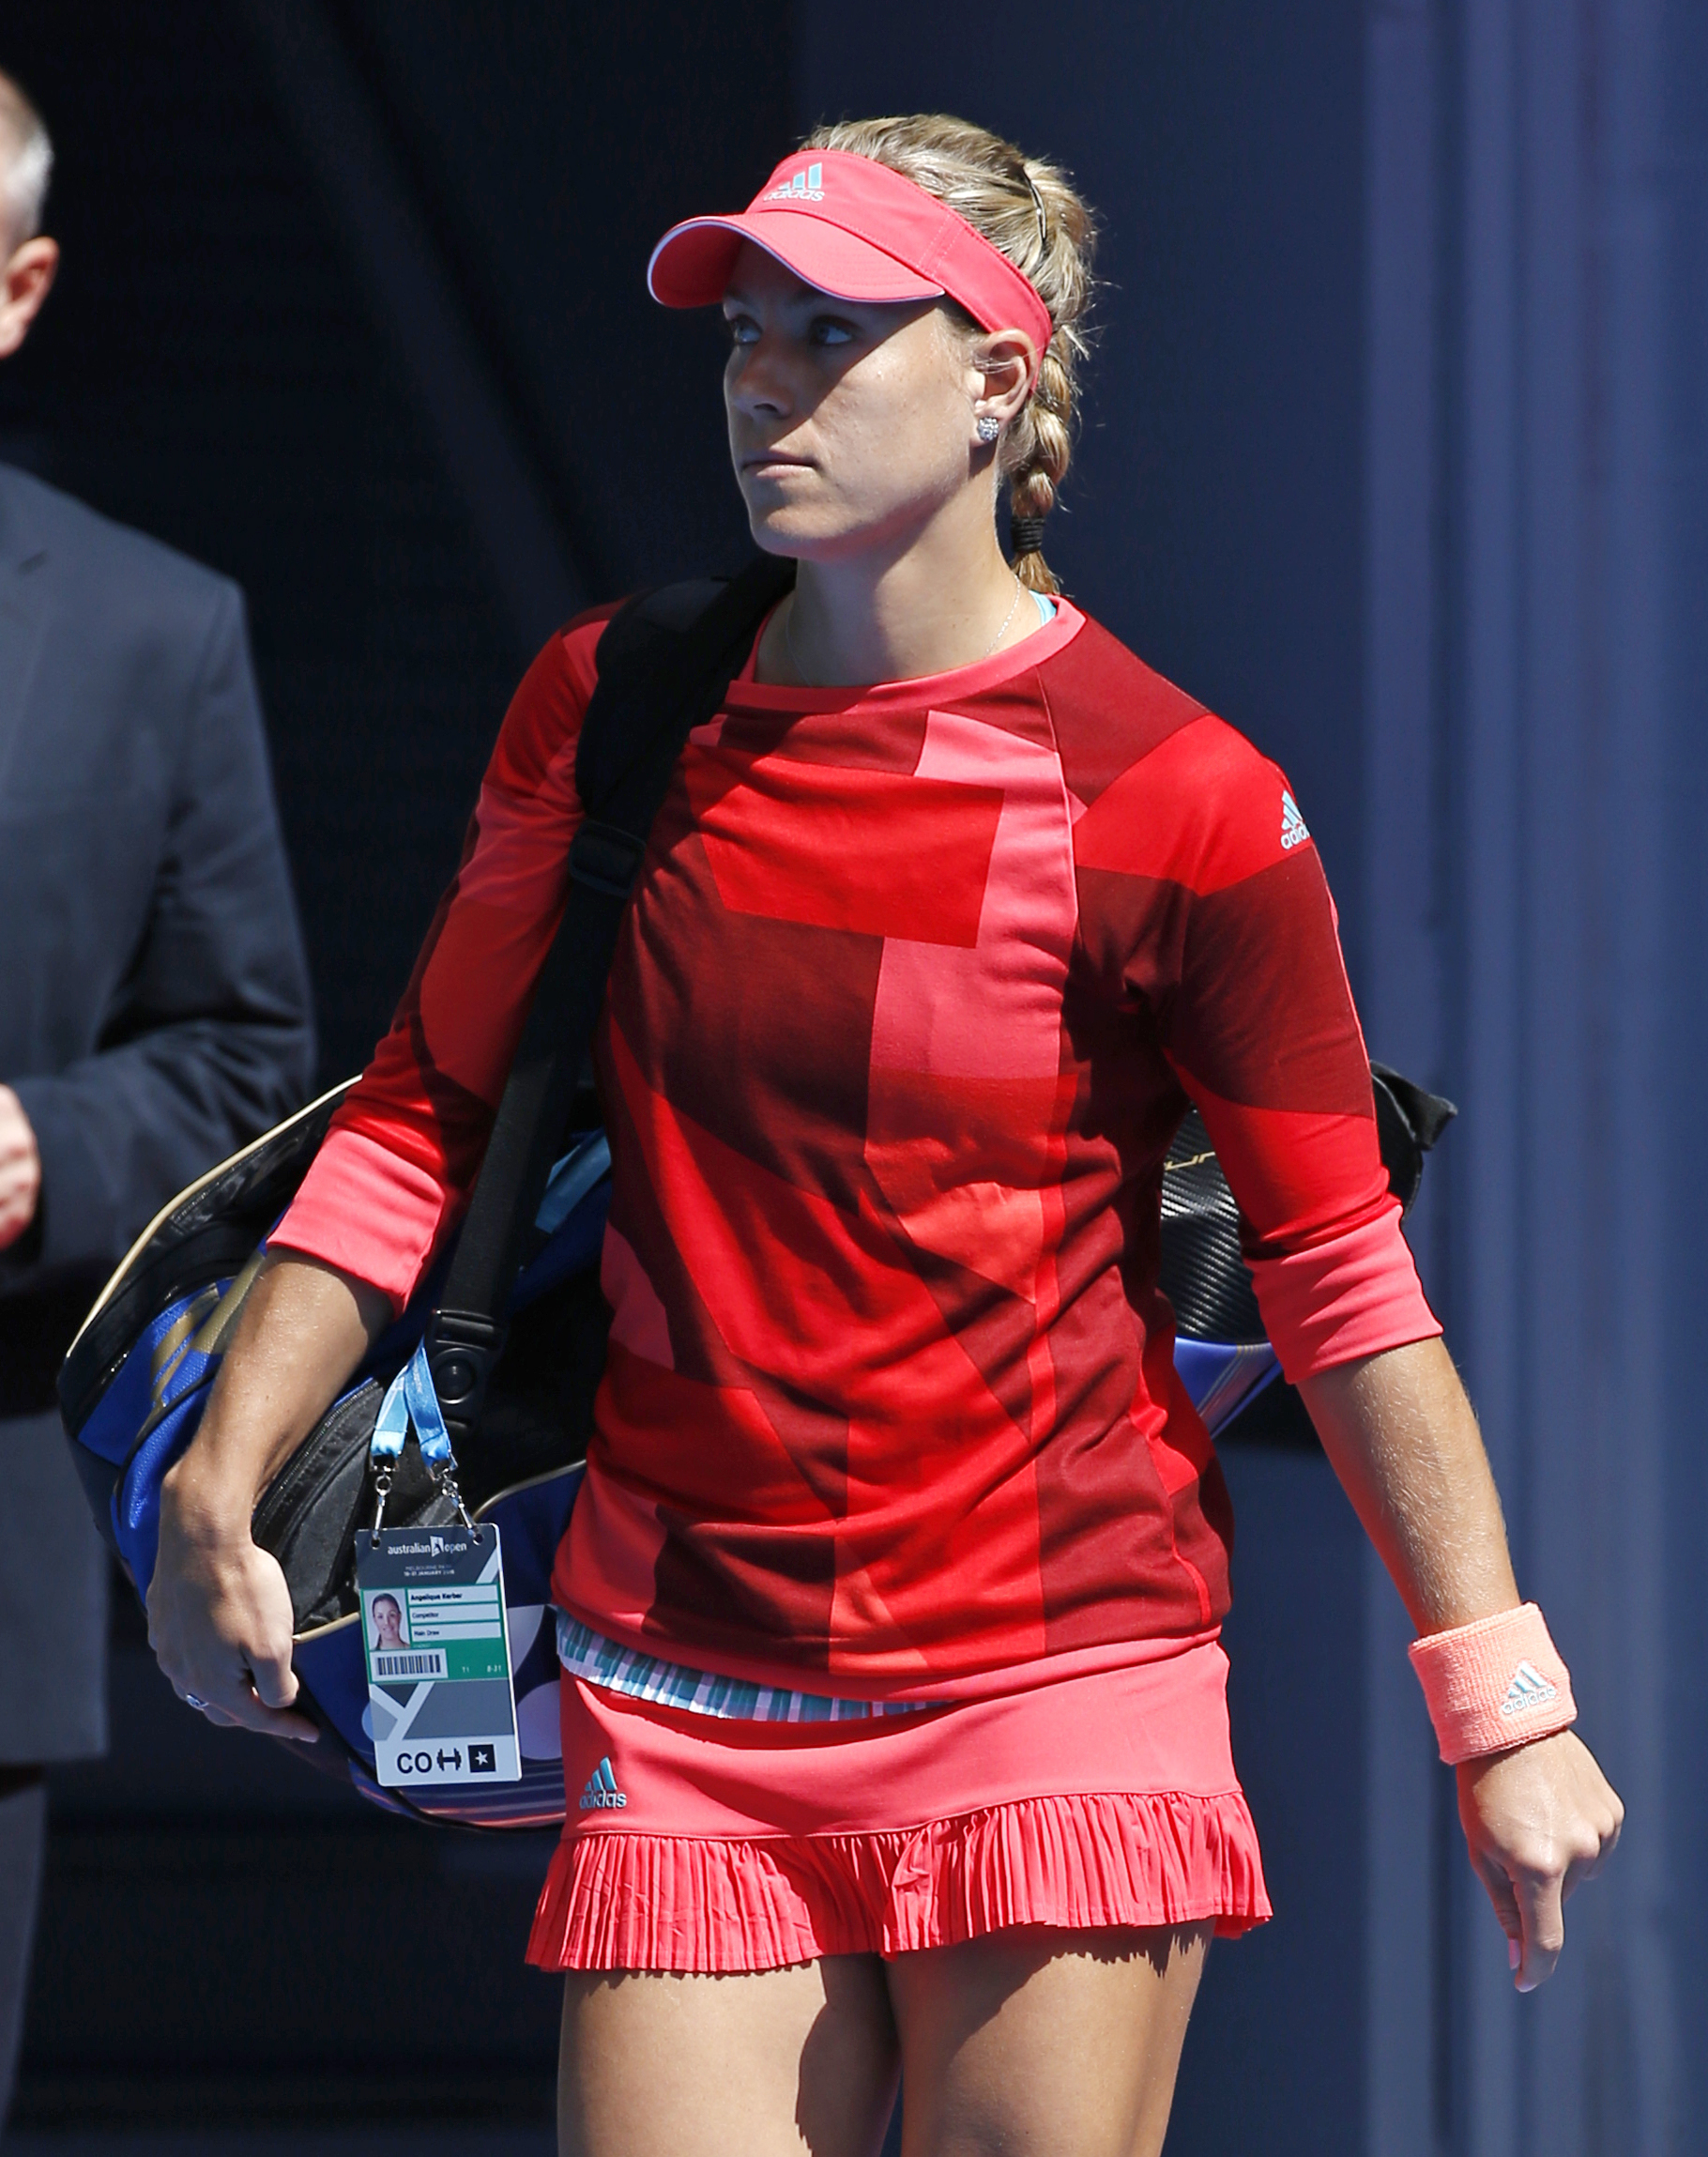 Angelique Kerber of Germany walks onto Rod Laver Arena for her fourth round match against compatriot Annika Beck at the Australian Open tennis championships in Melbourne, Australia, Monday, Jan. 25, 2016.(AP Photo/Vincent Thian)